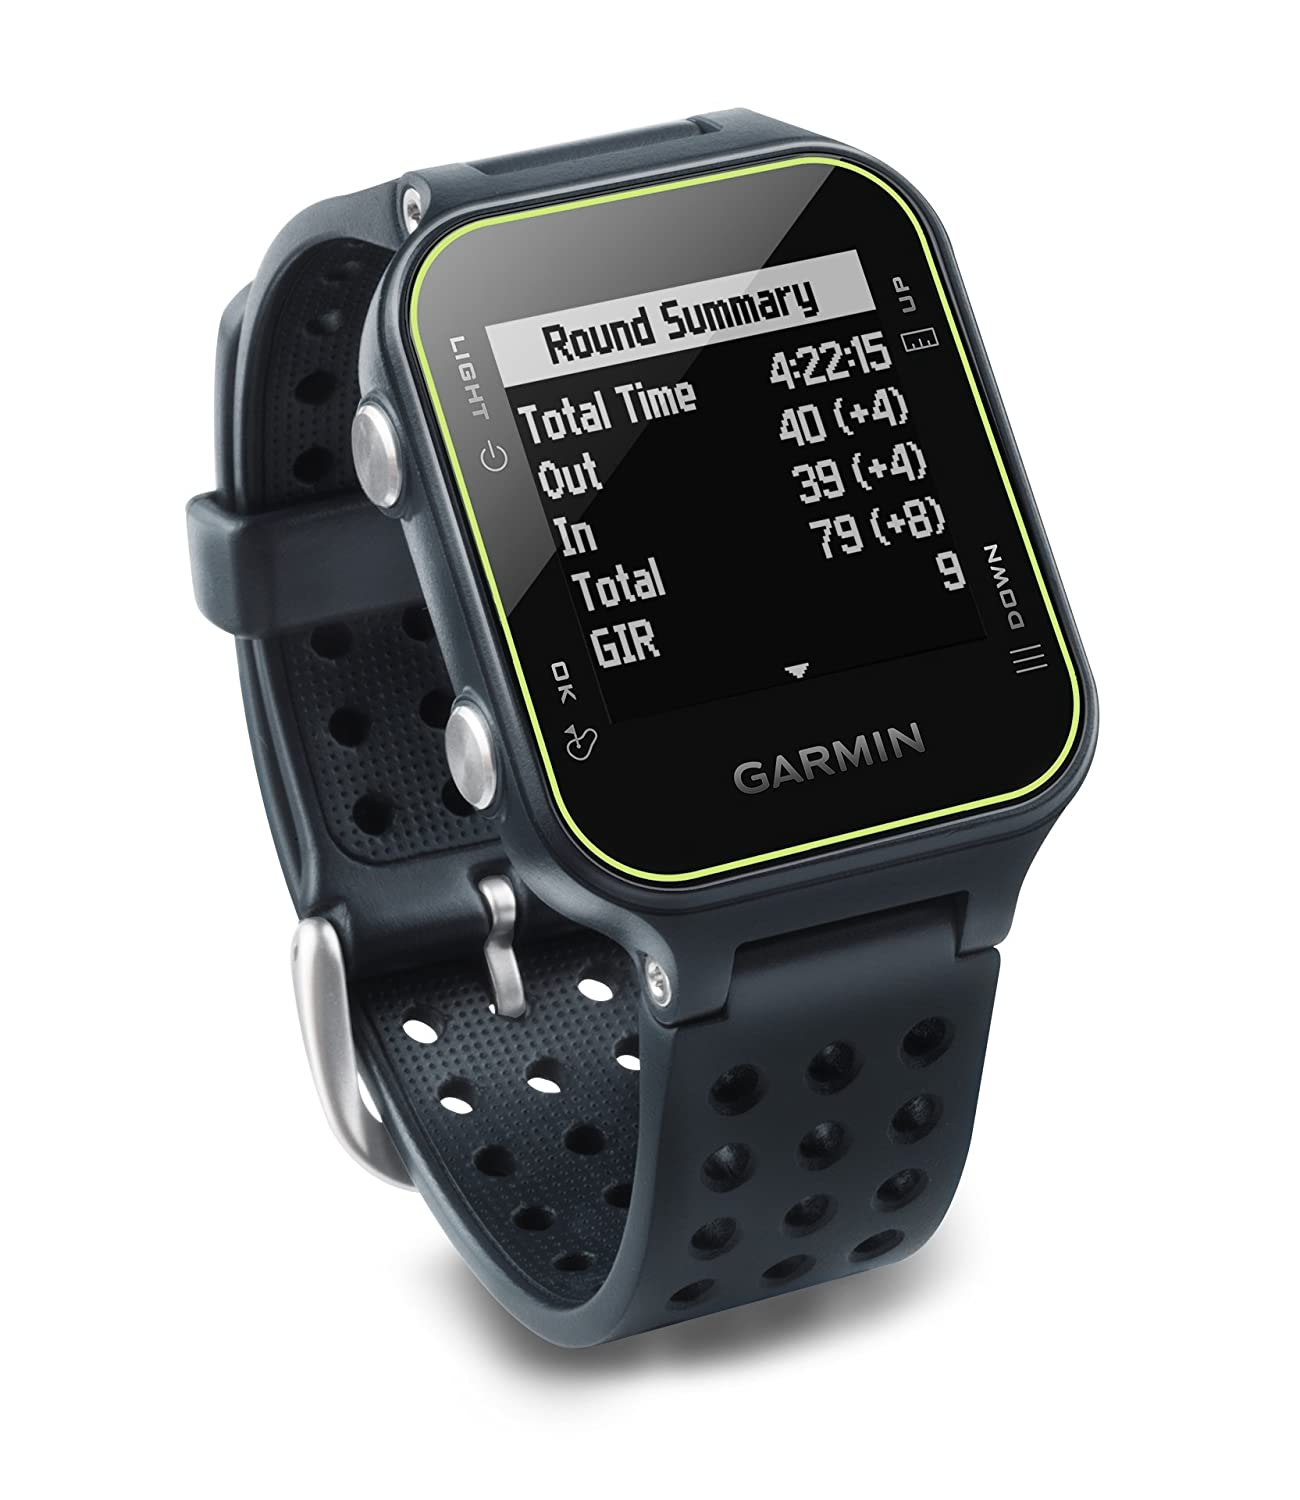 『1年保証』 [ガーミン]Garmin Approach S20, GPS Golf Approach Watch with B01B3BPMHA Step Tracking, Tracking, Preloaded Courses, Slate[並行輸入] スレートSlate B01B3BPMHA, バージンダイヤモンド専門店:5e4c82aa --- h909215399.nichost.ru